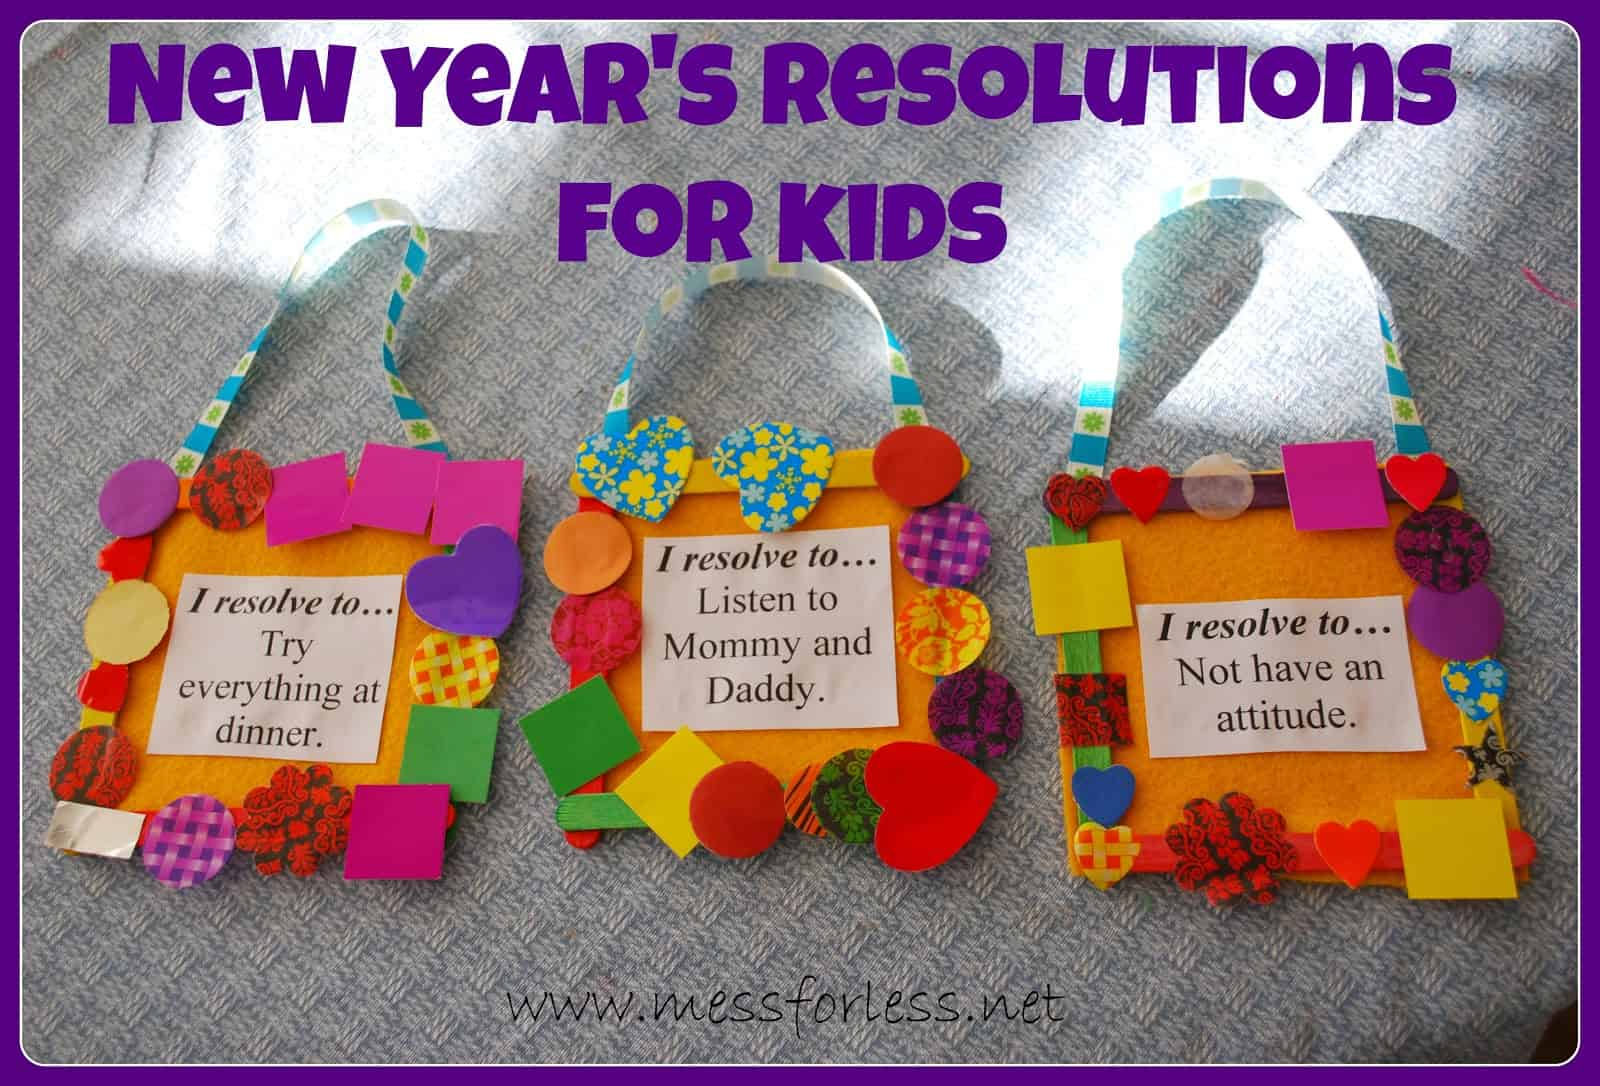 New Year's Resolutions for Kids - Mess for Less